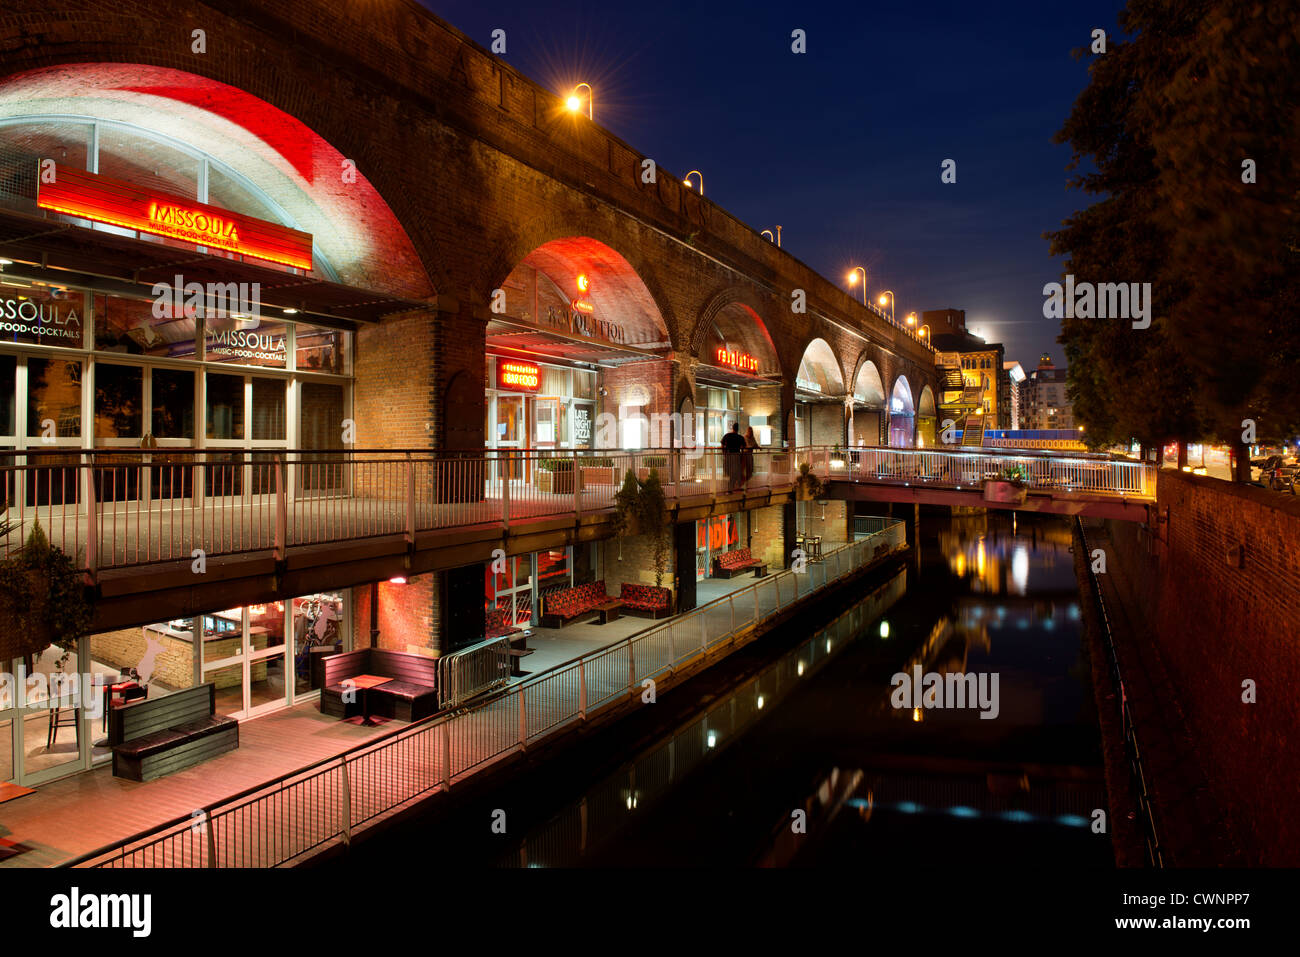 The Nightlife Of The Bars And Restaurants Of Deansgate Locks Arches